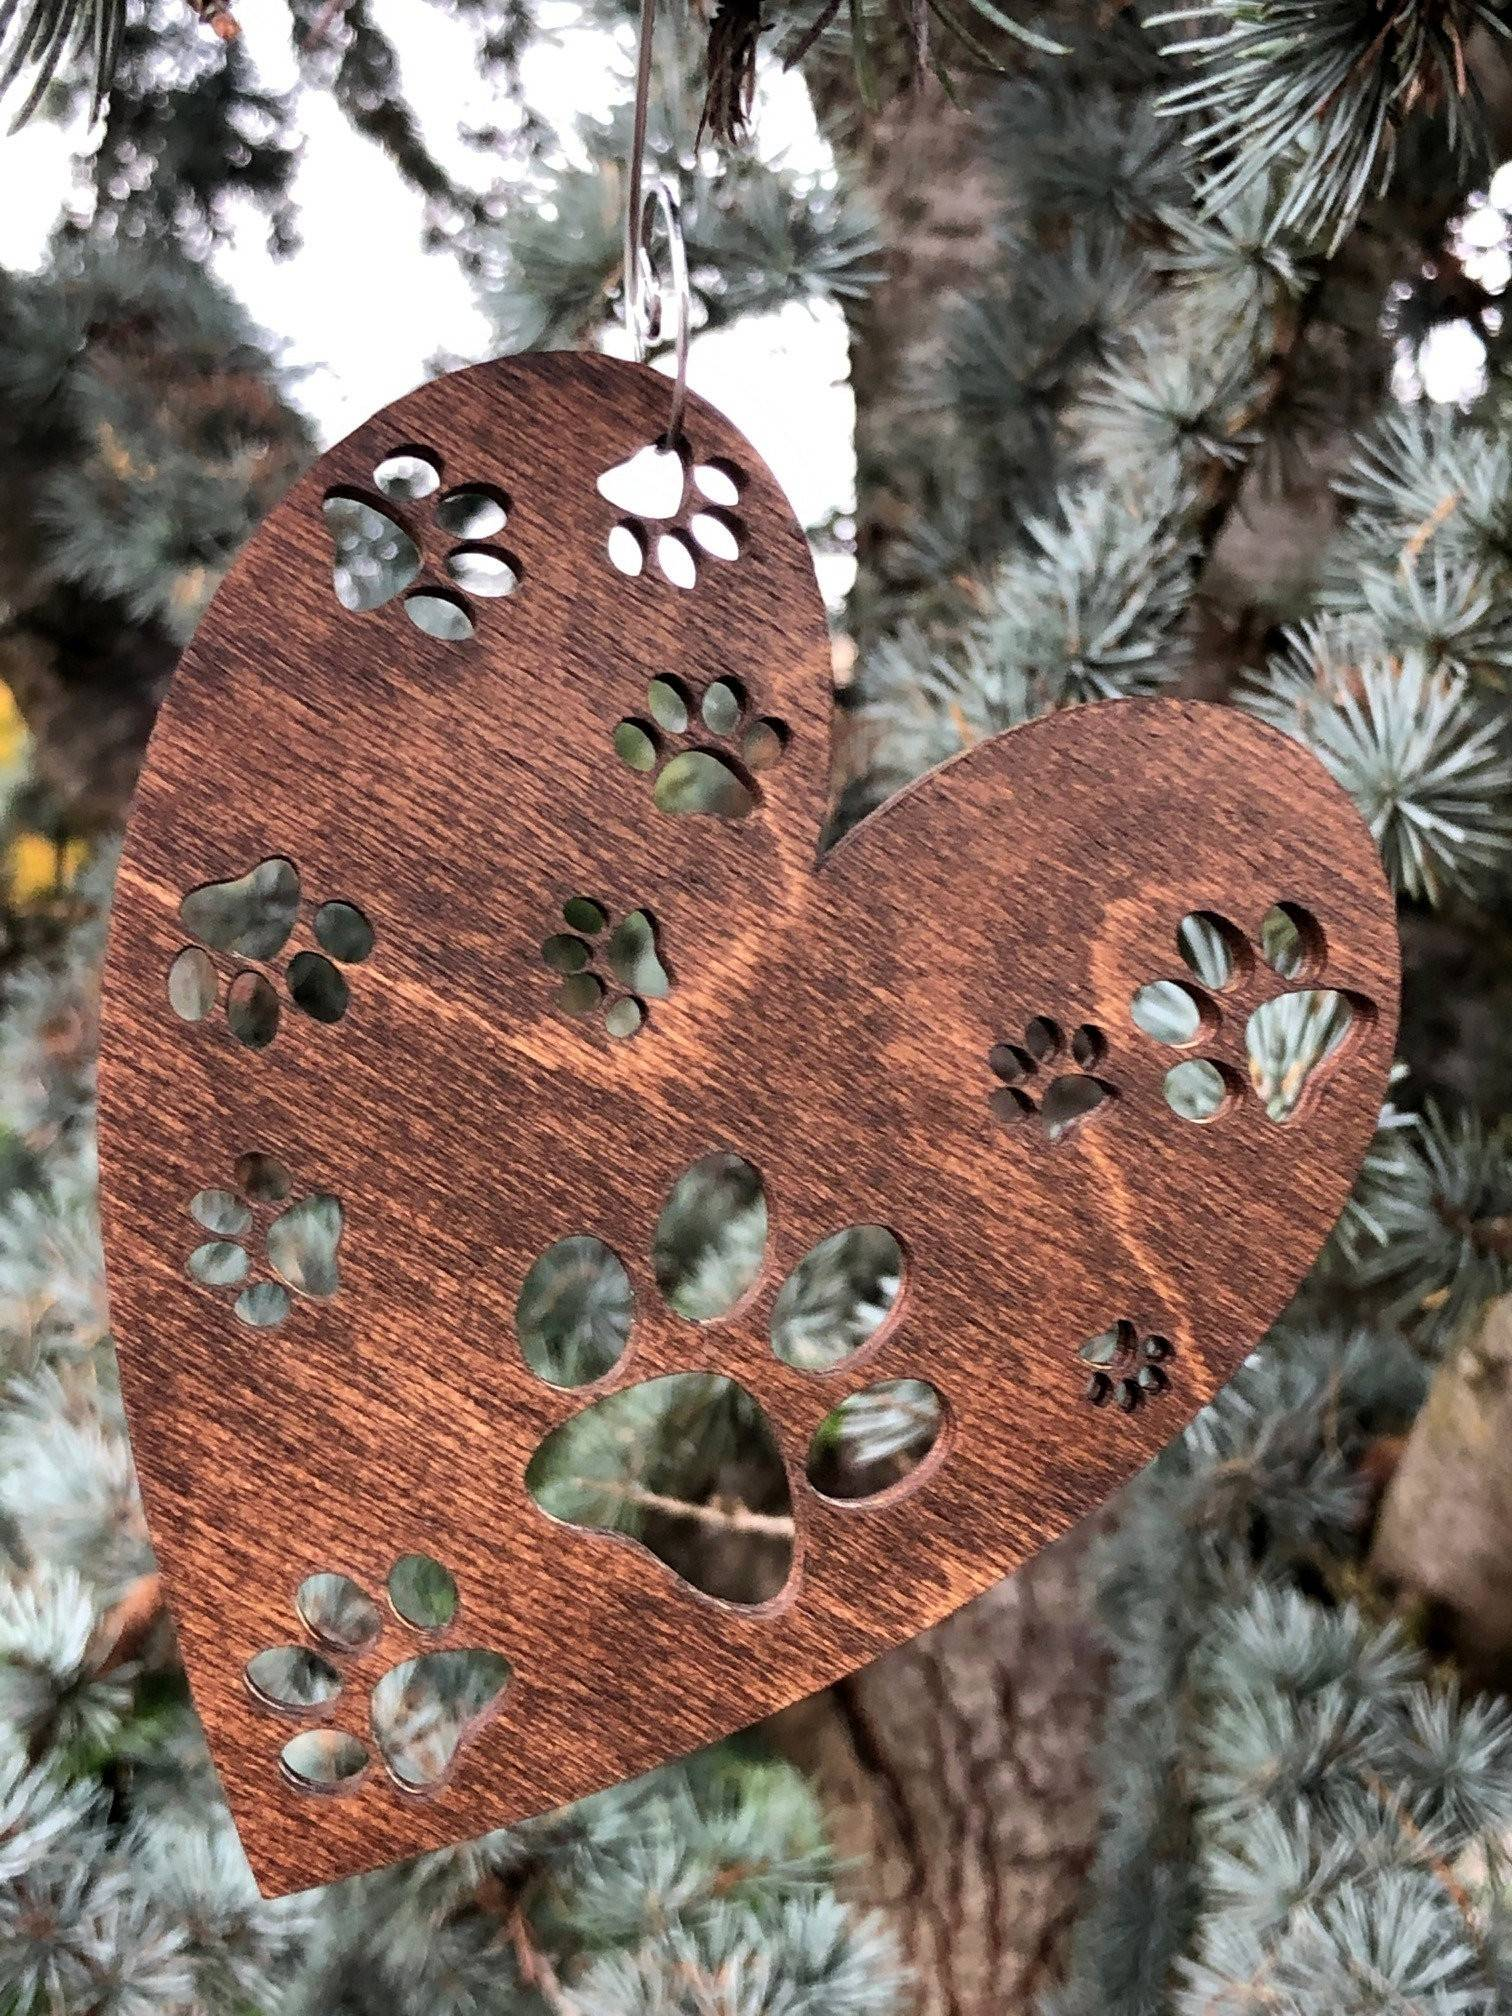 Pawprints on Heart Wood Christmas Ornaments